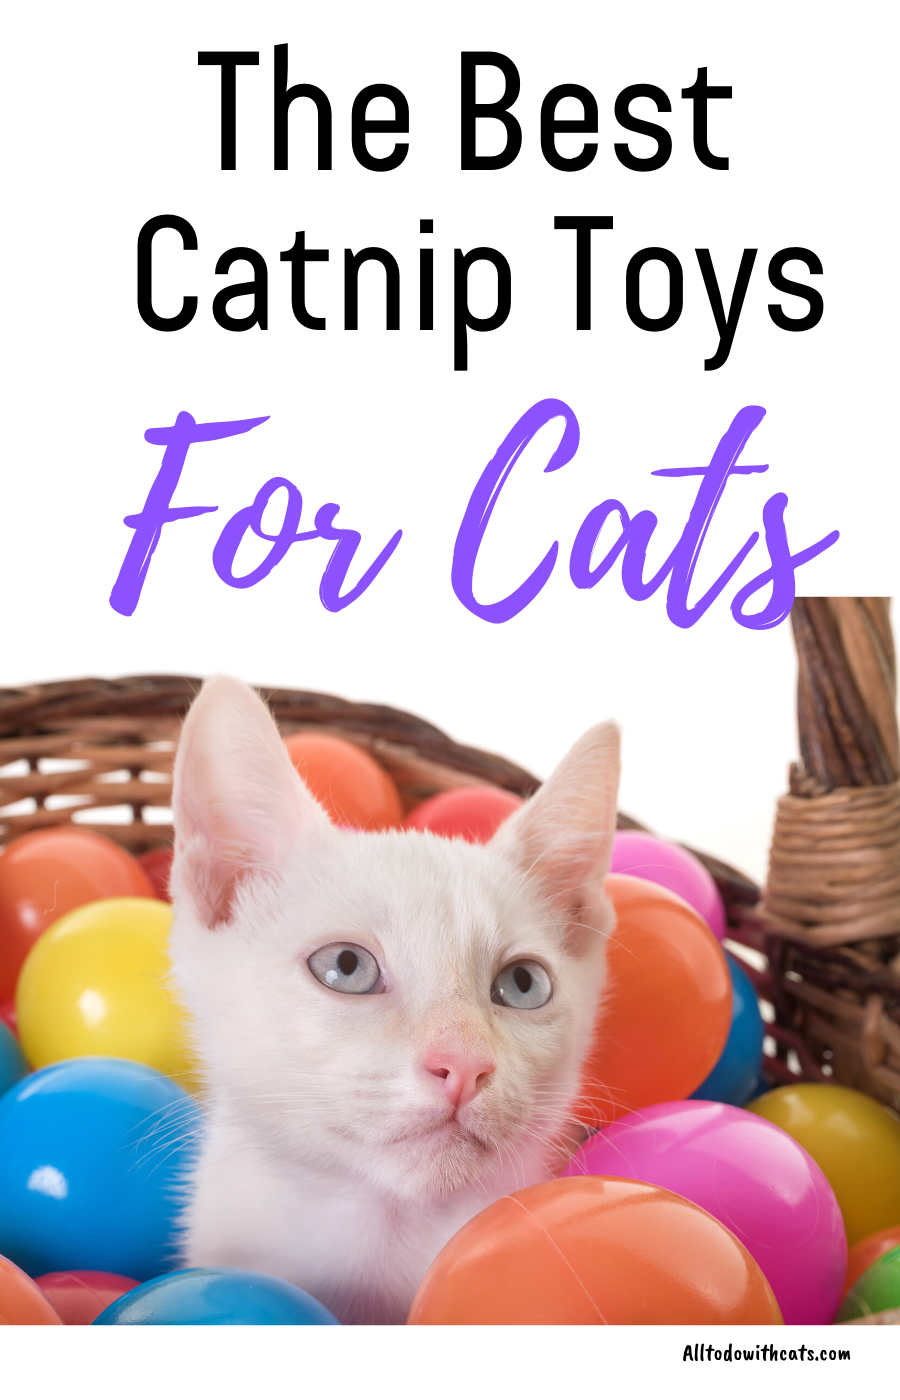 The Best Catnip Toys For Cats Your Kitty Will Love In 2020 Cat Toys Catnip Toys Pet Care Cats